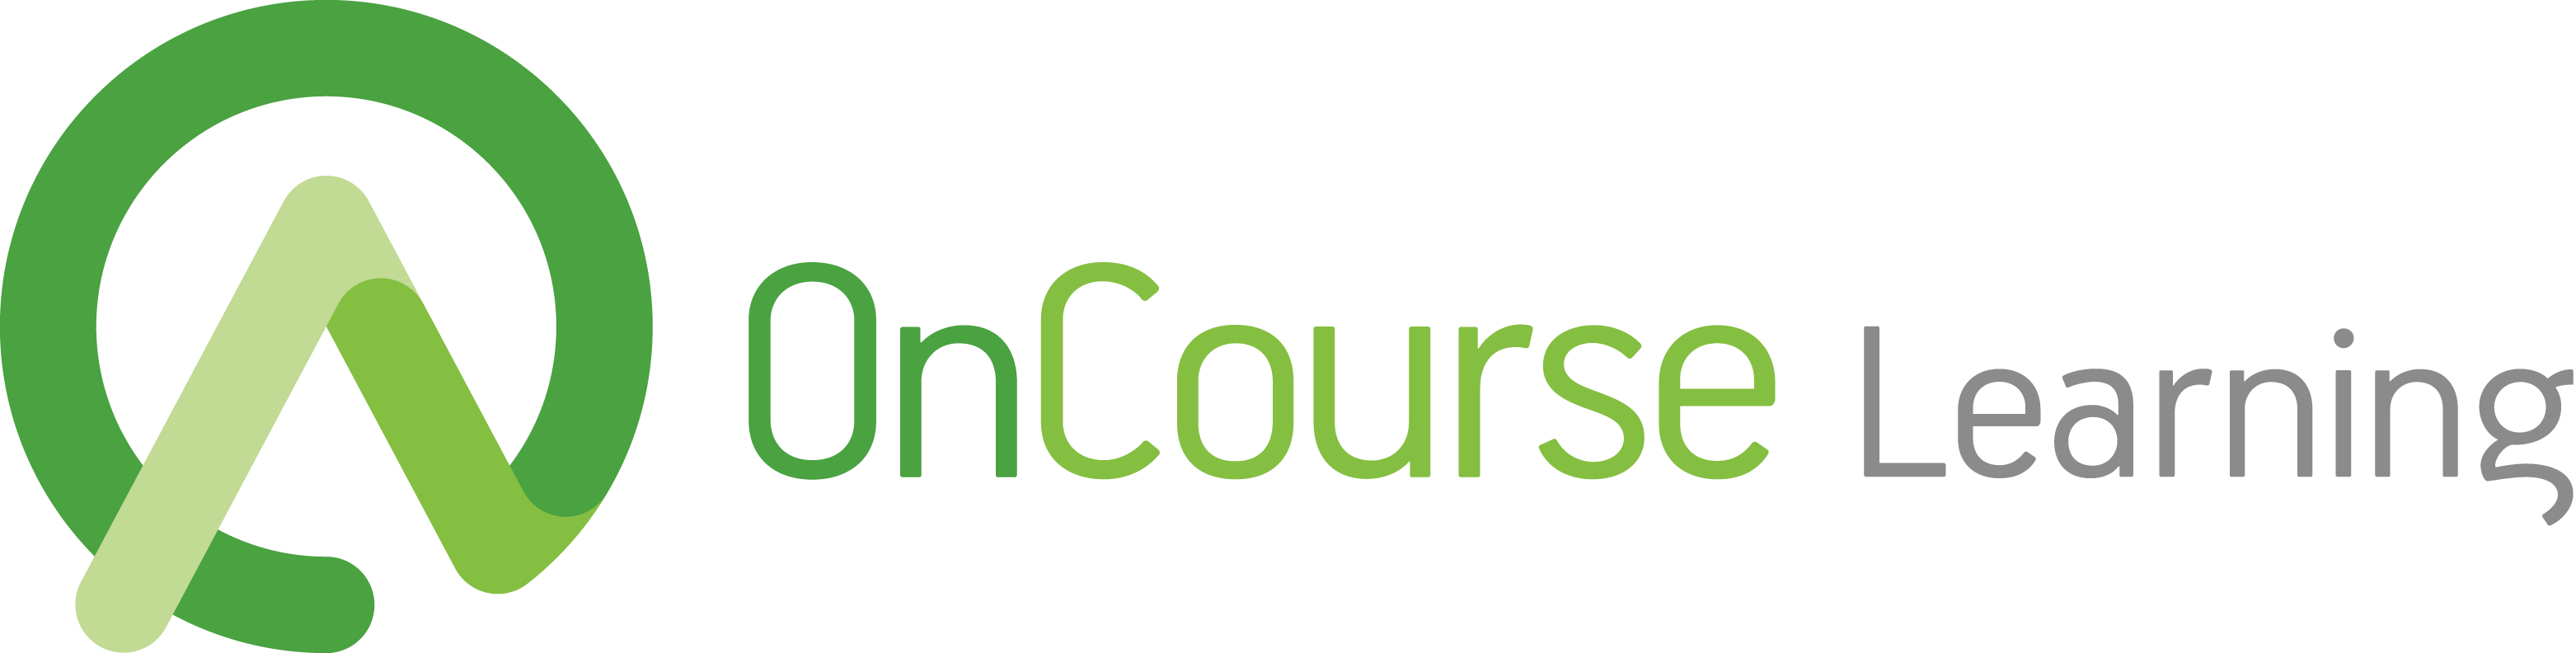 oncourse-learning-logo.png